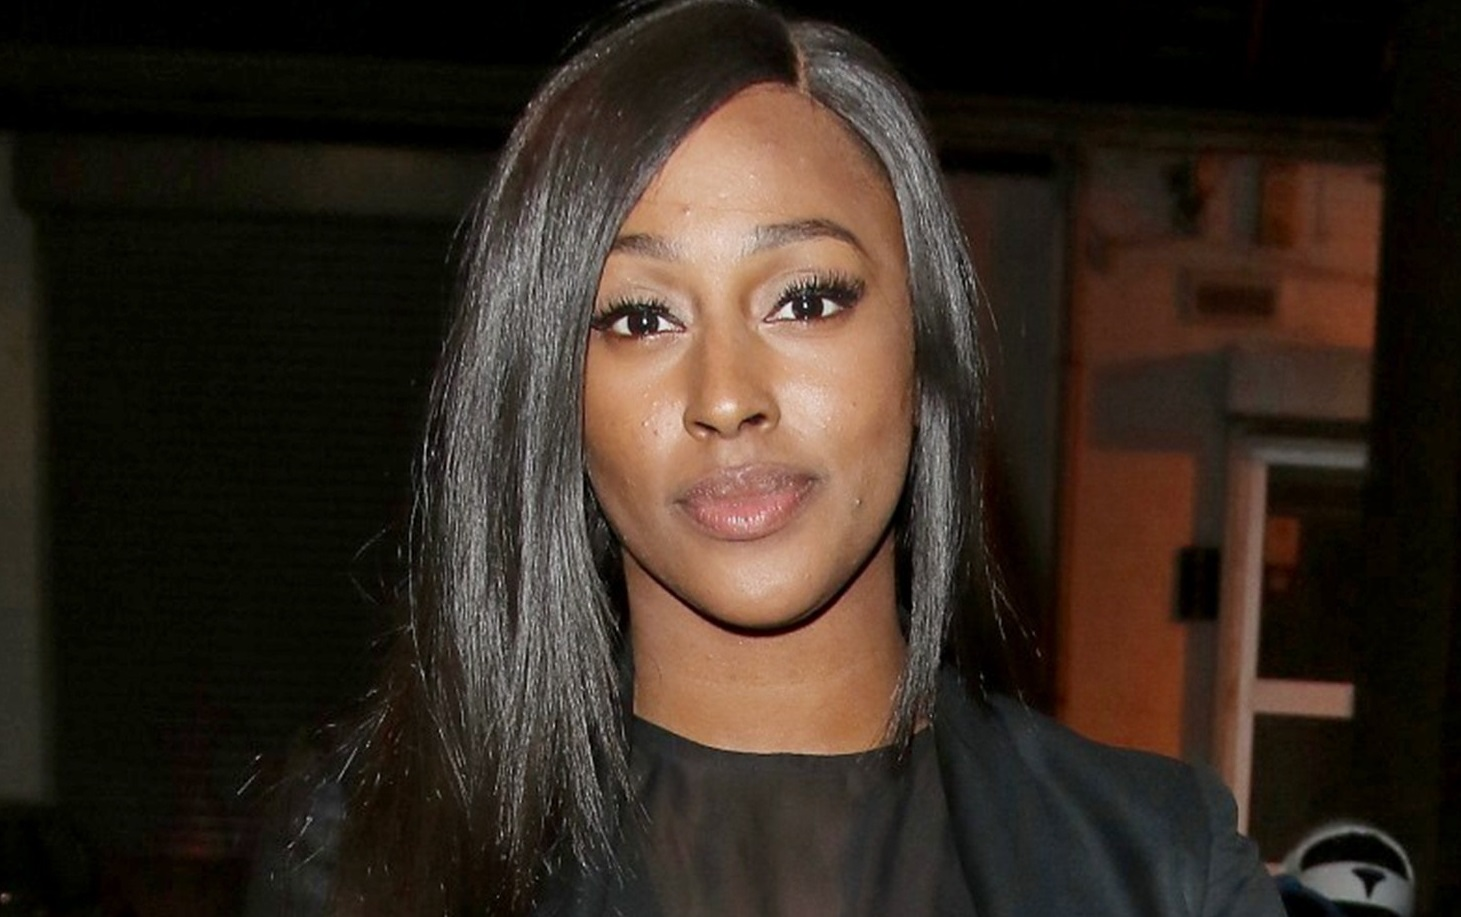 Alexandra Burke announces engagement to long-term love Josh - see the stunning ring!